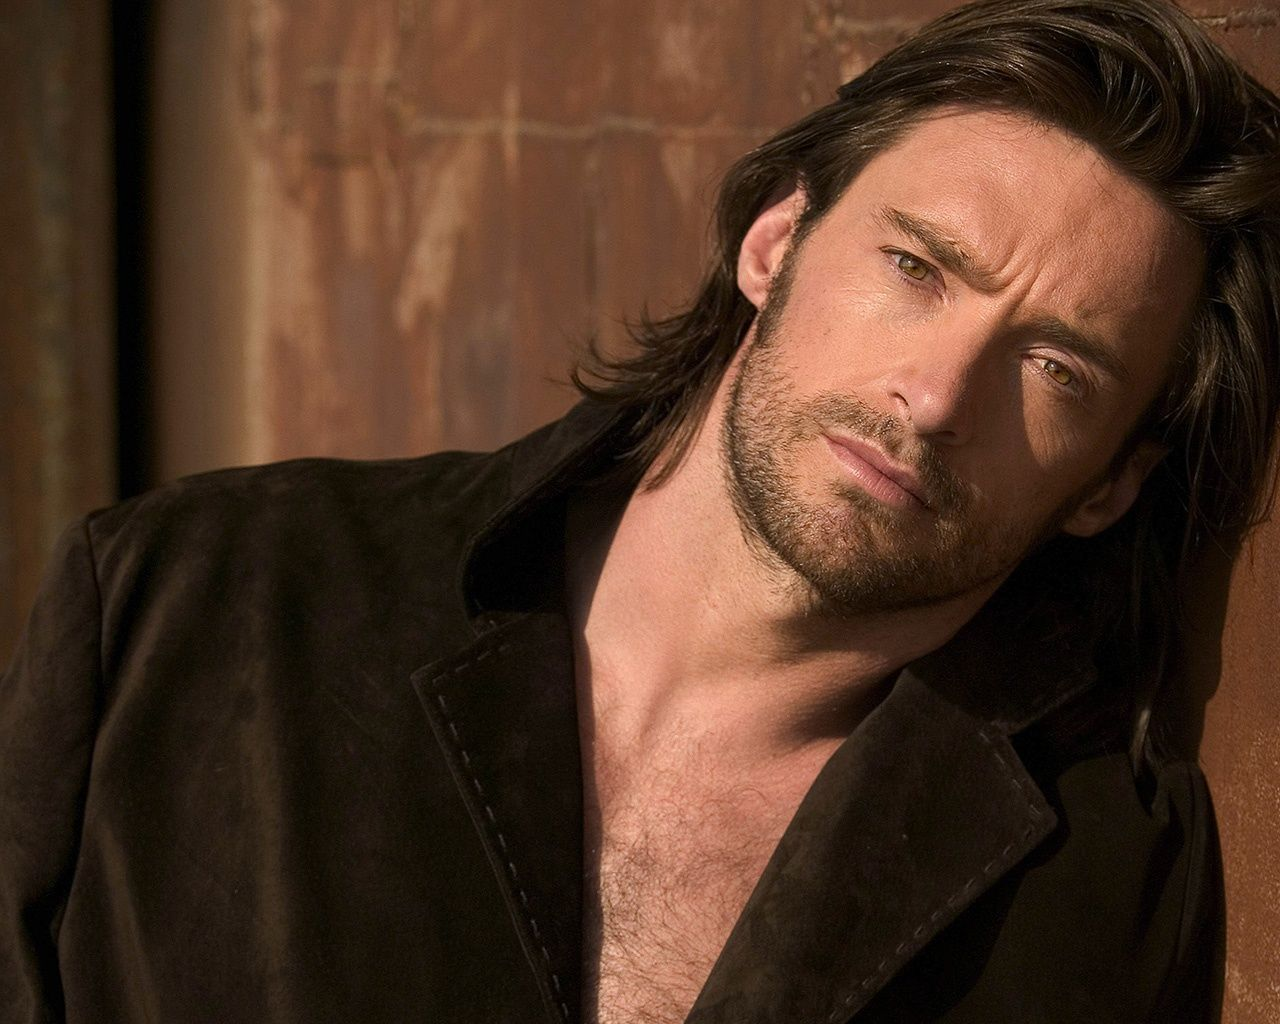 This Is Hugh Jackman Not My Hero Asher Day But Those Eyes